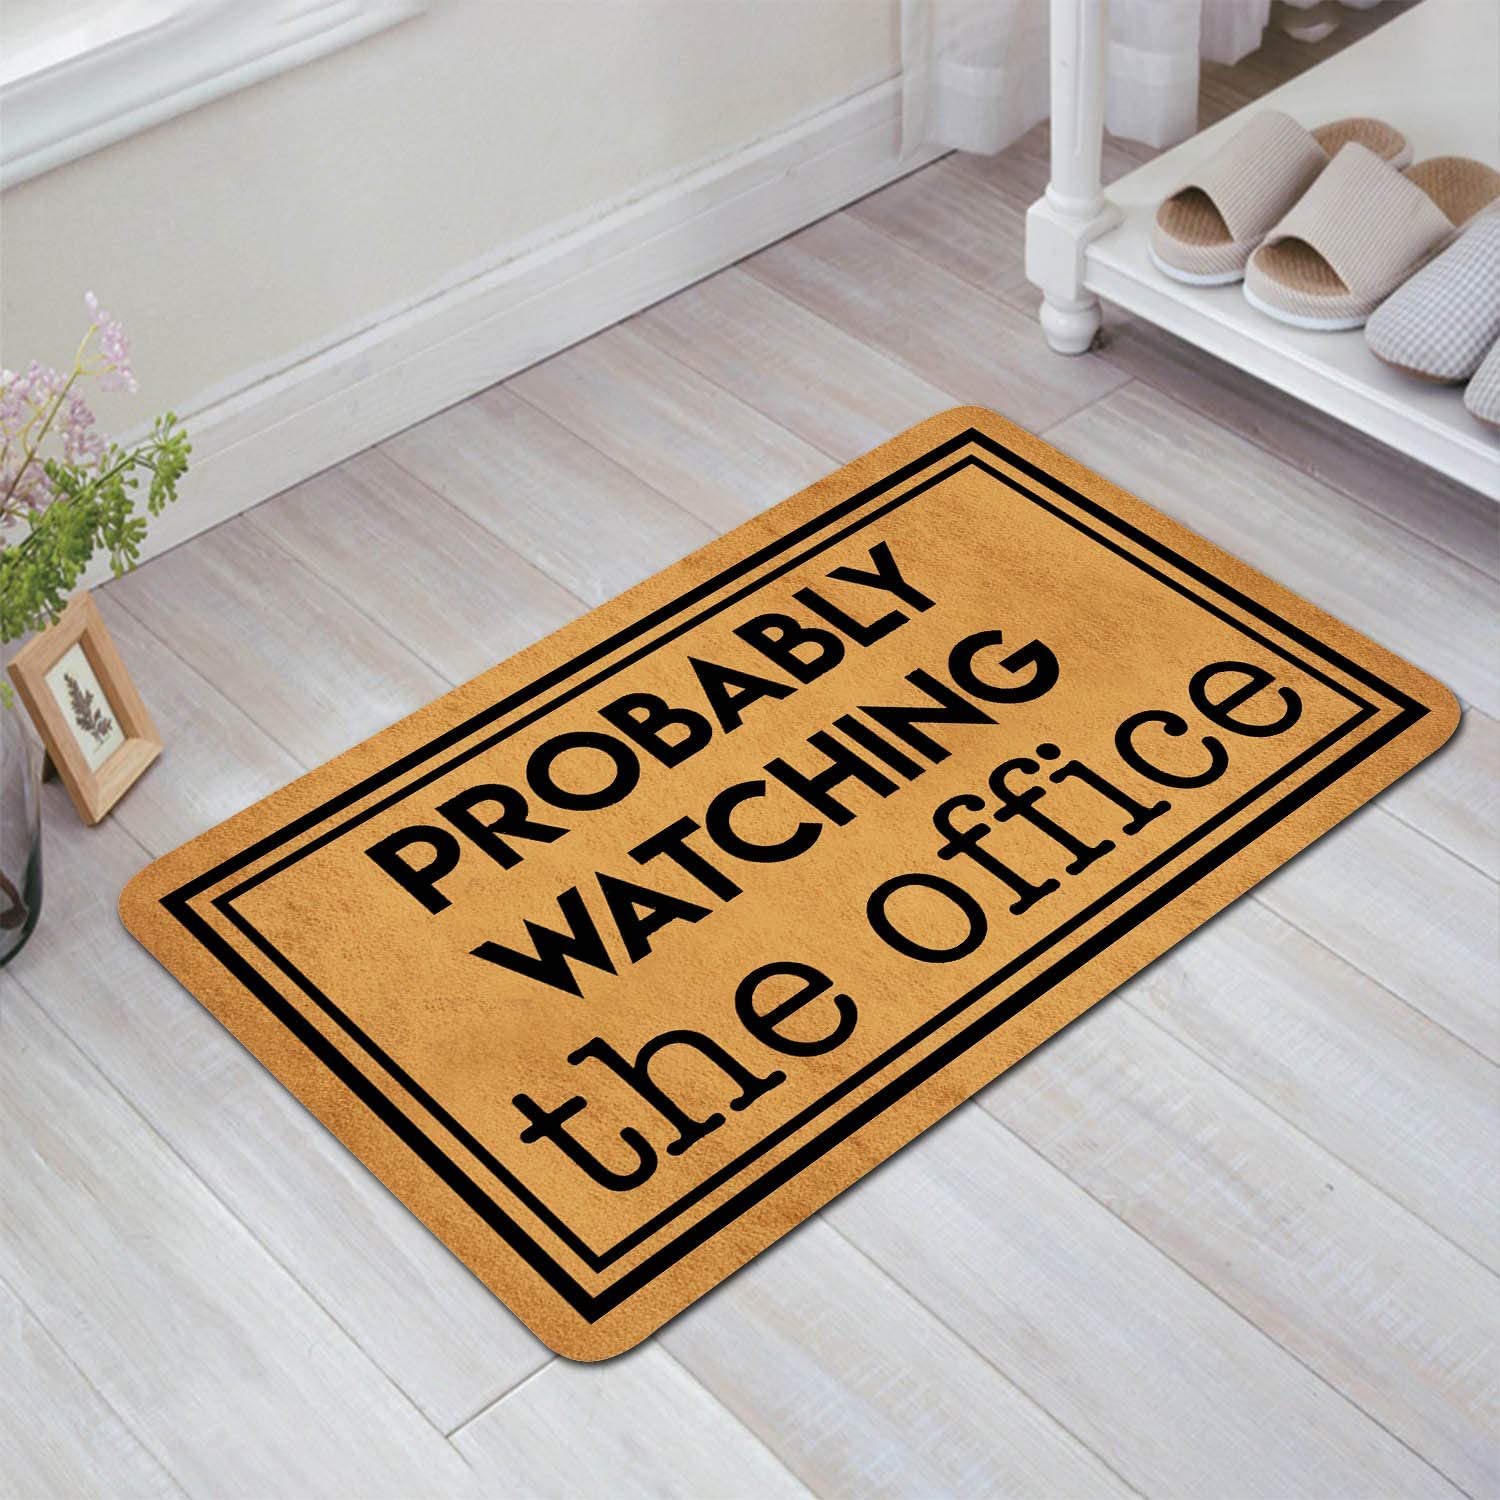 "DoubleJun Funny Doormat Probably Watching The Office Entrance Mat Floor Rug Indoor/Outdoor/Front Door Mats Home Decor Machine Washable Rubber Non Slip Backing 29.5""(W) by 17.7""(L)"